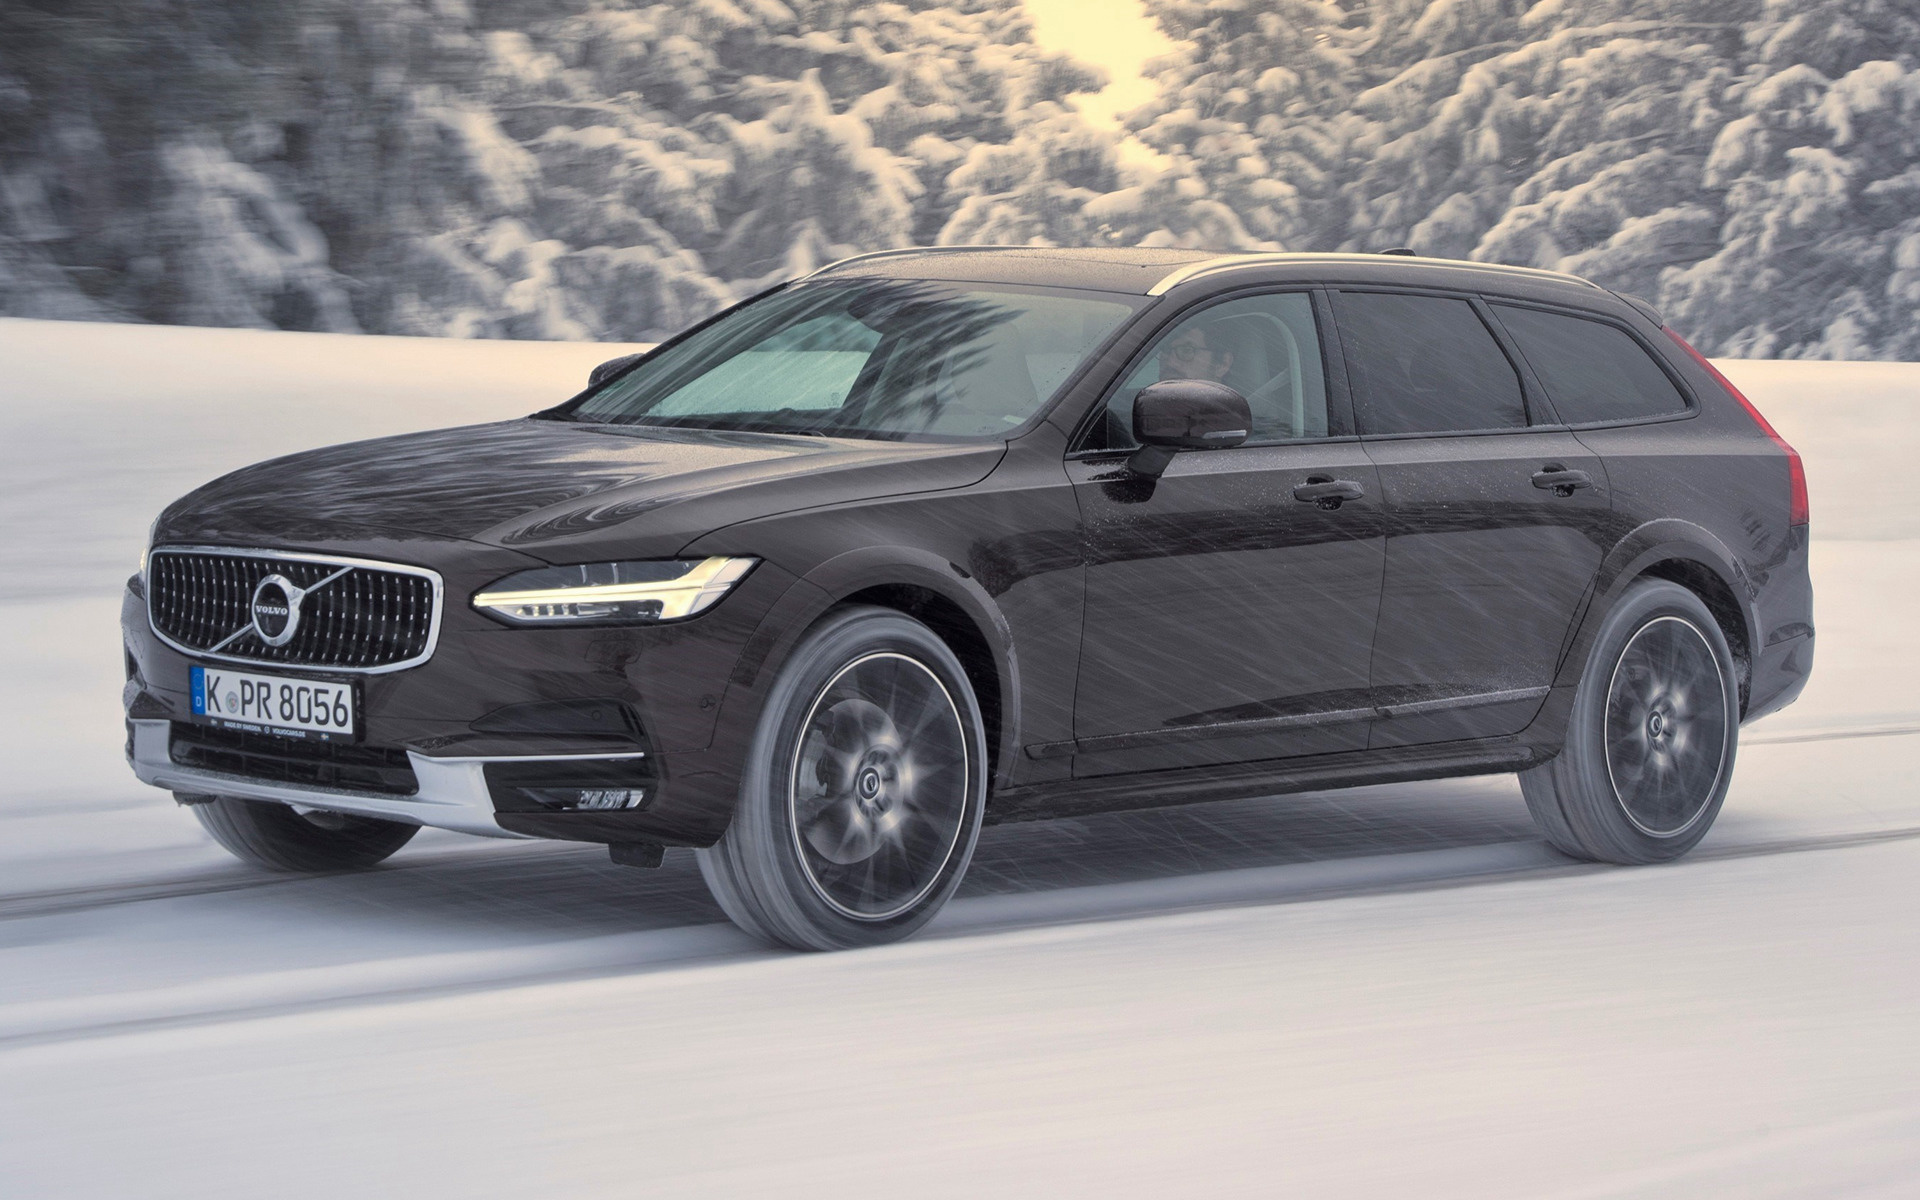 BMW Is From Which Country >> 2016 Volvo V90 Cross Country - Wallpapers and HD Images | Car Pixel